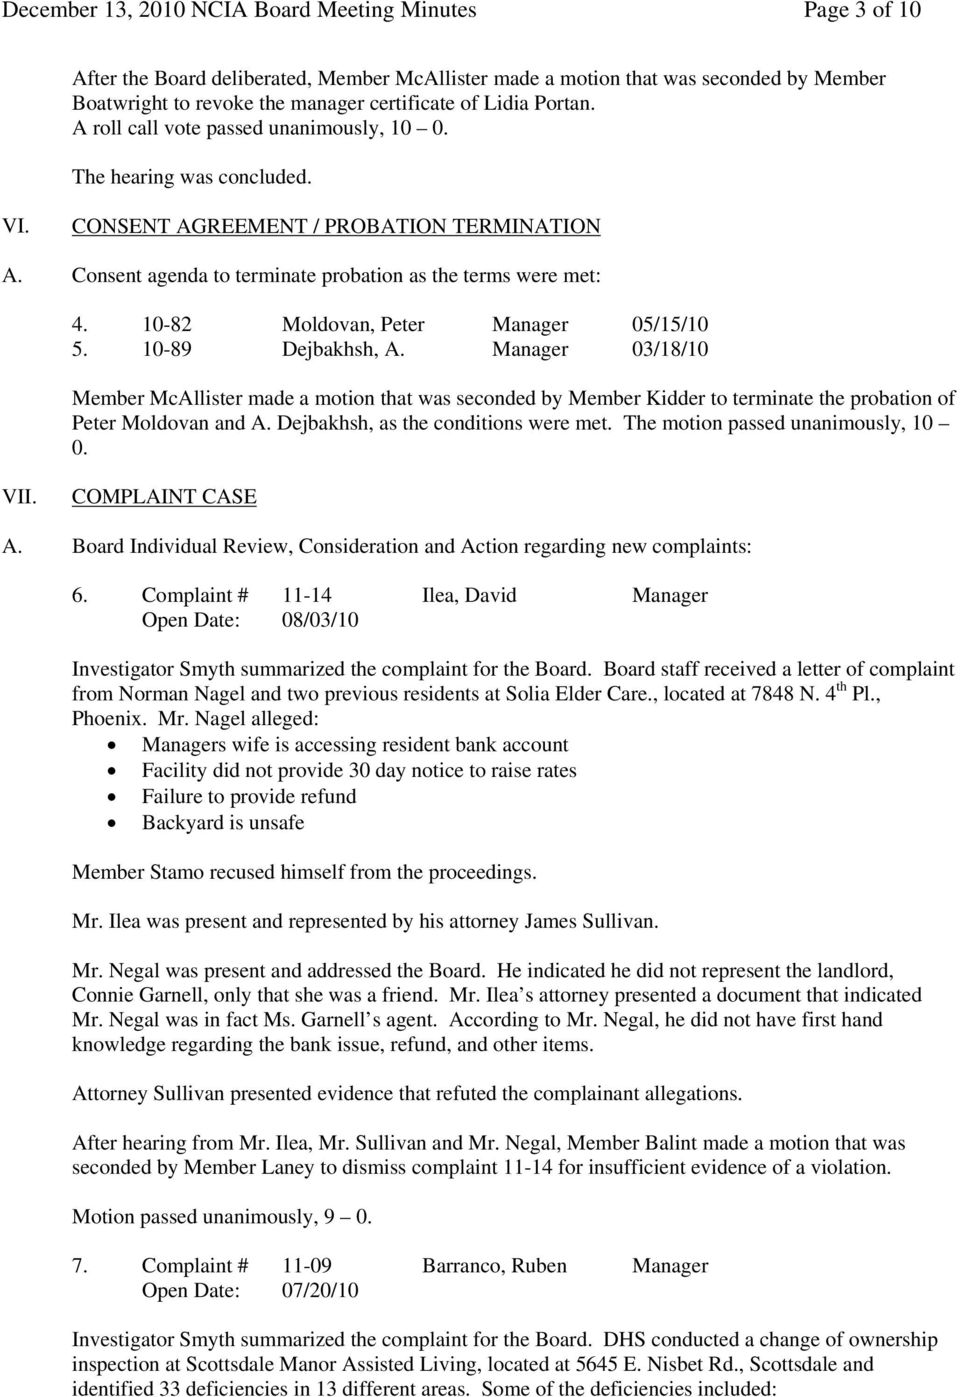 10-89 Dejbakhsh, A. Manager 03/18/10 Member McAllister made a motion that was seconded by Member Kidder to terminate the probation of Peter Moldovan and A. Dejbakhsh, as the conditions were met.